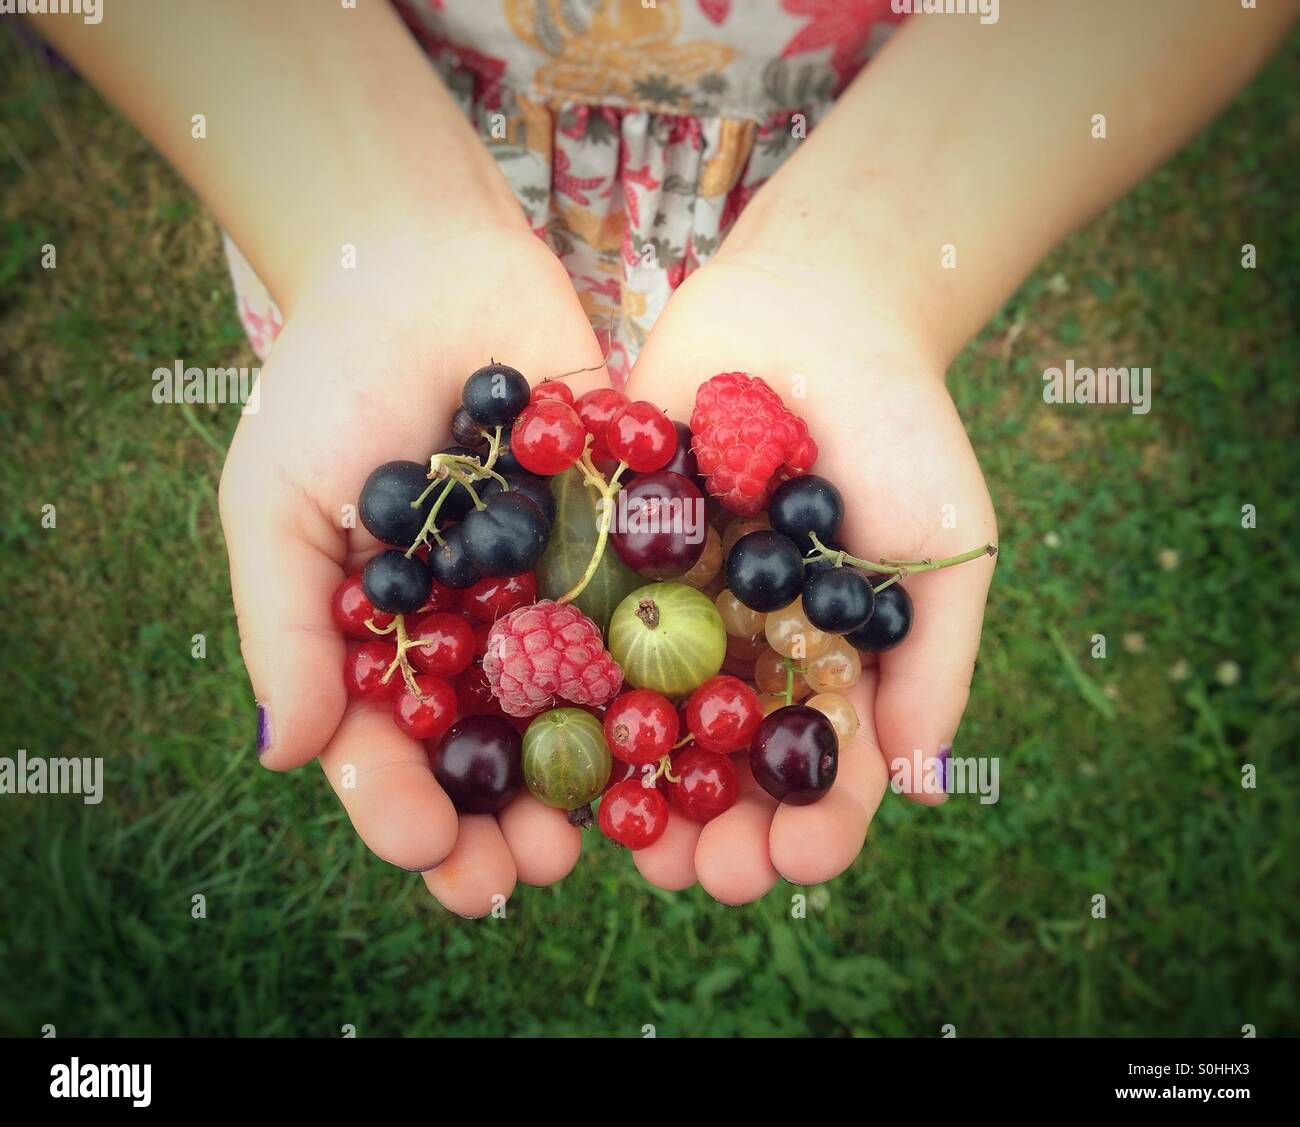 Fruits in child hands - Stock Image